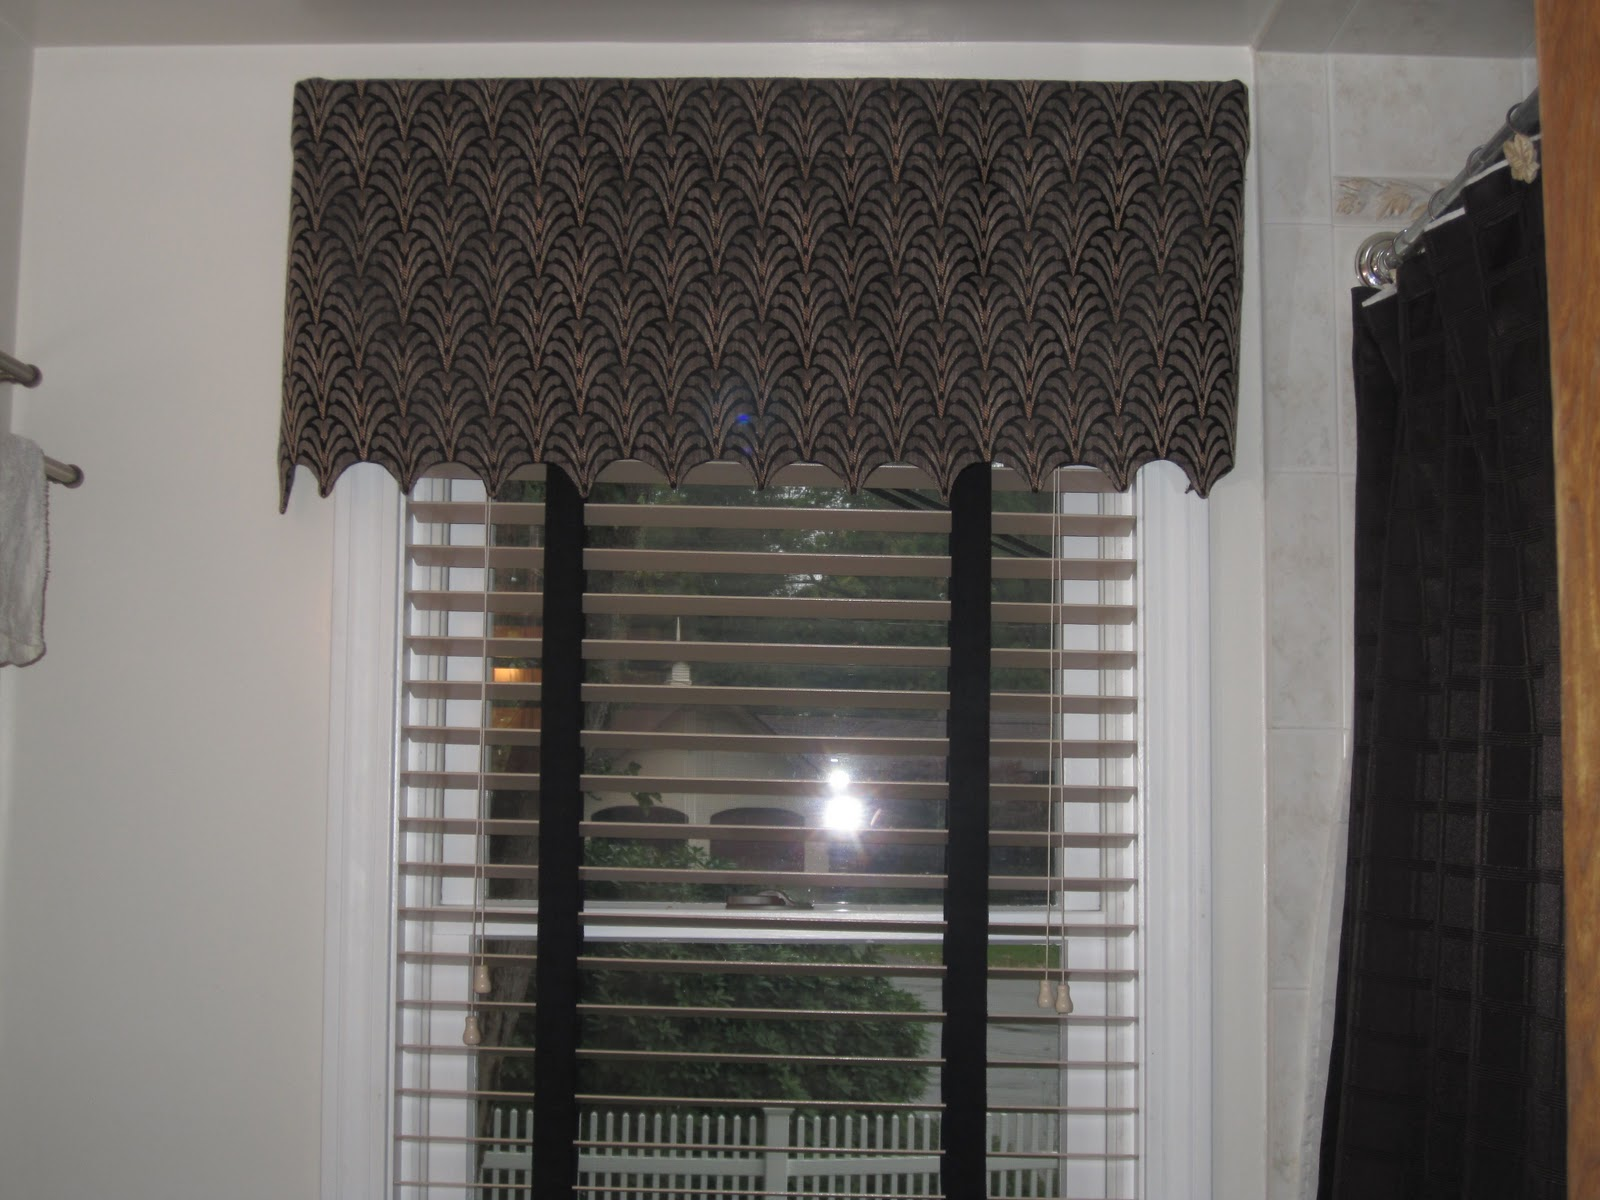 Bathroom window blinds - Bathroom Window Curtains And Valances Room Dining Kitchen Curtain Ideas Along With Dream Home Then